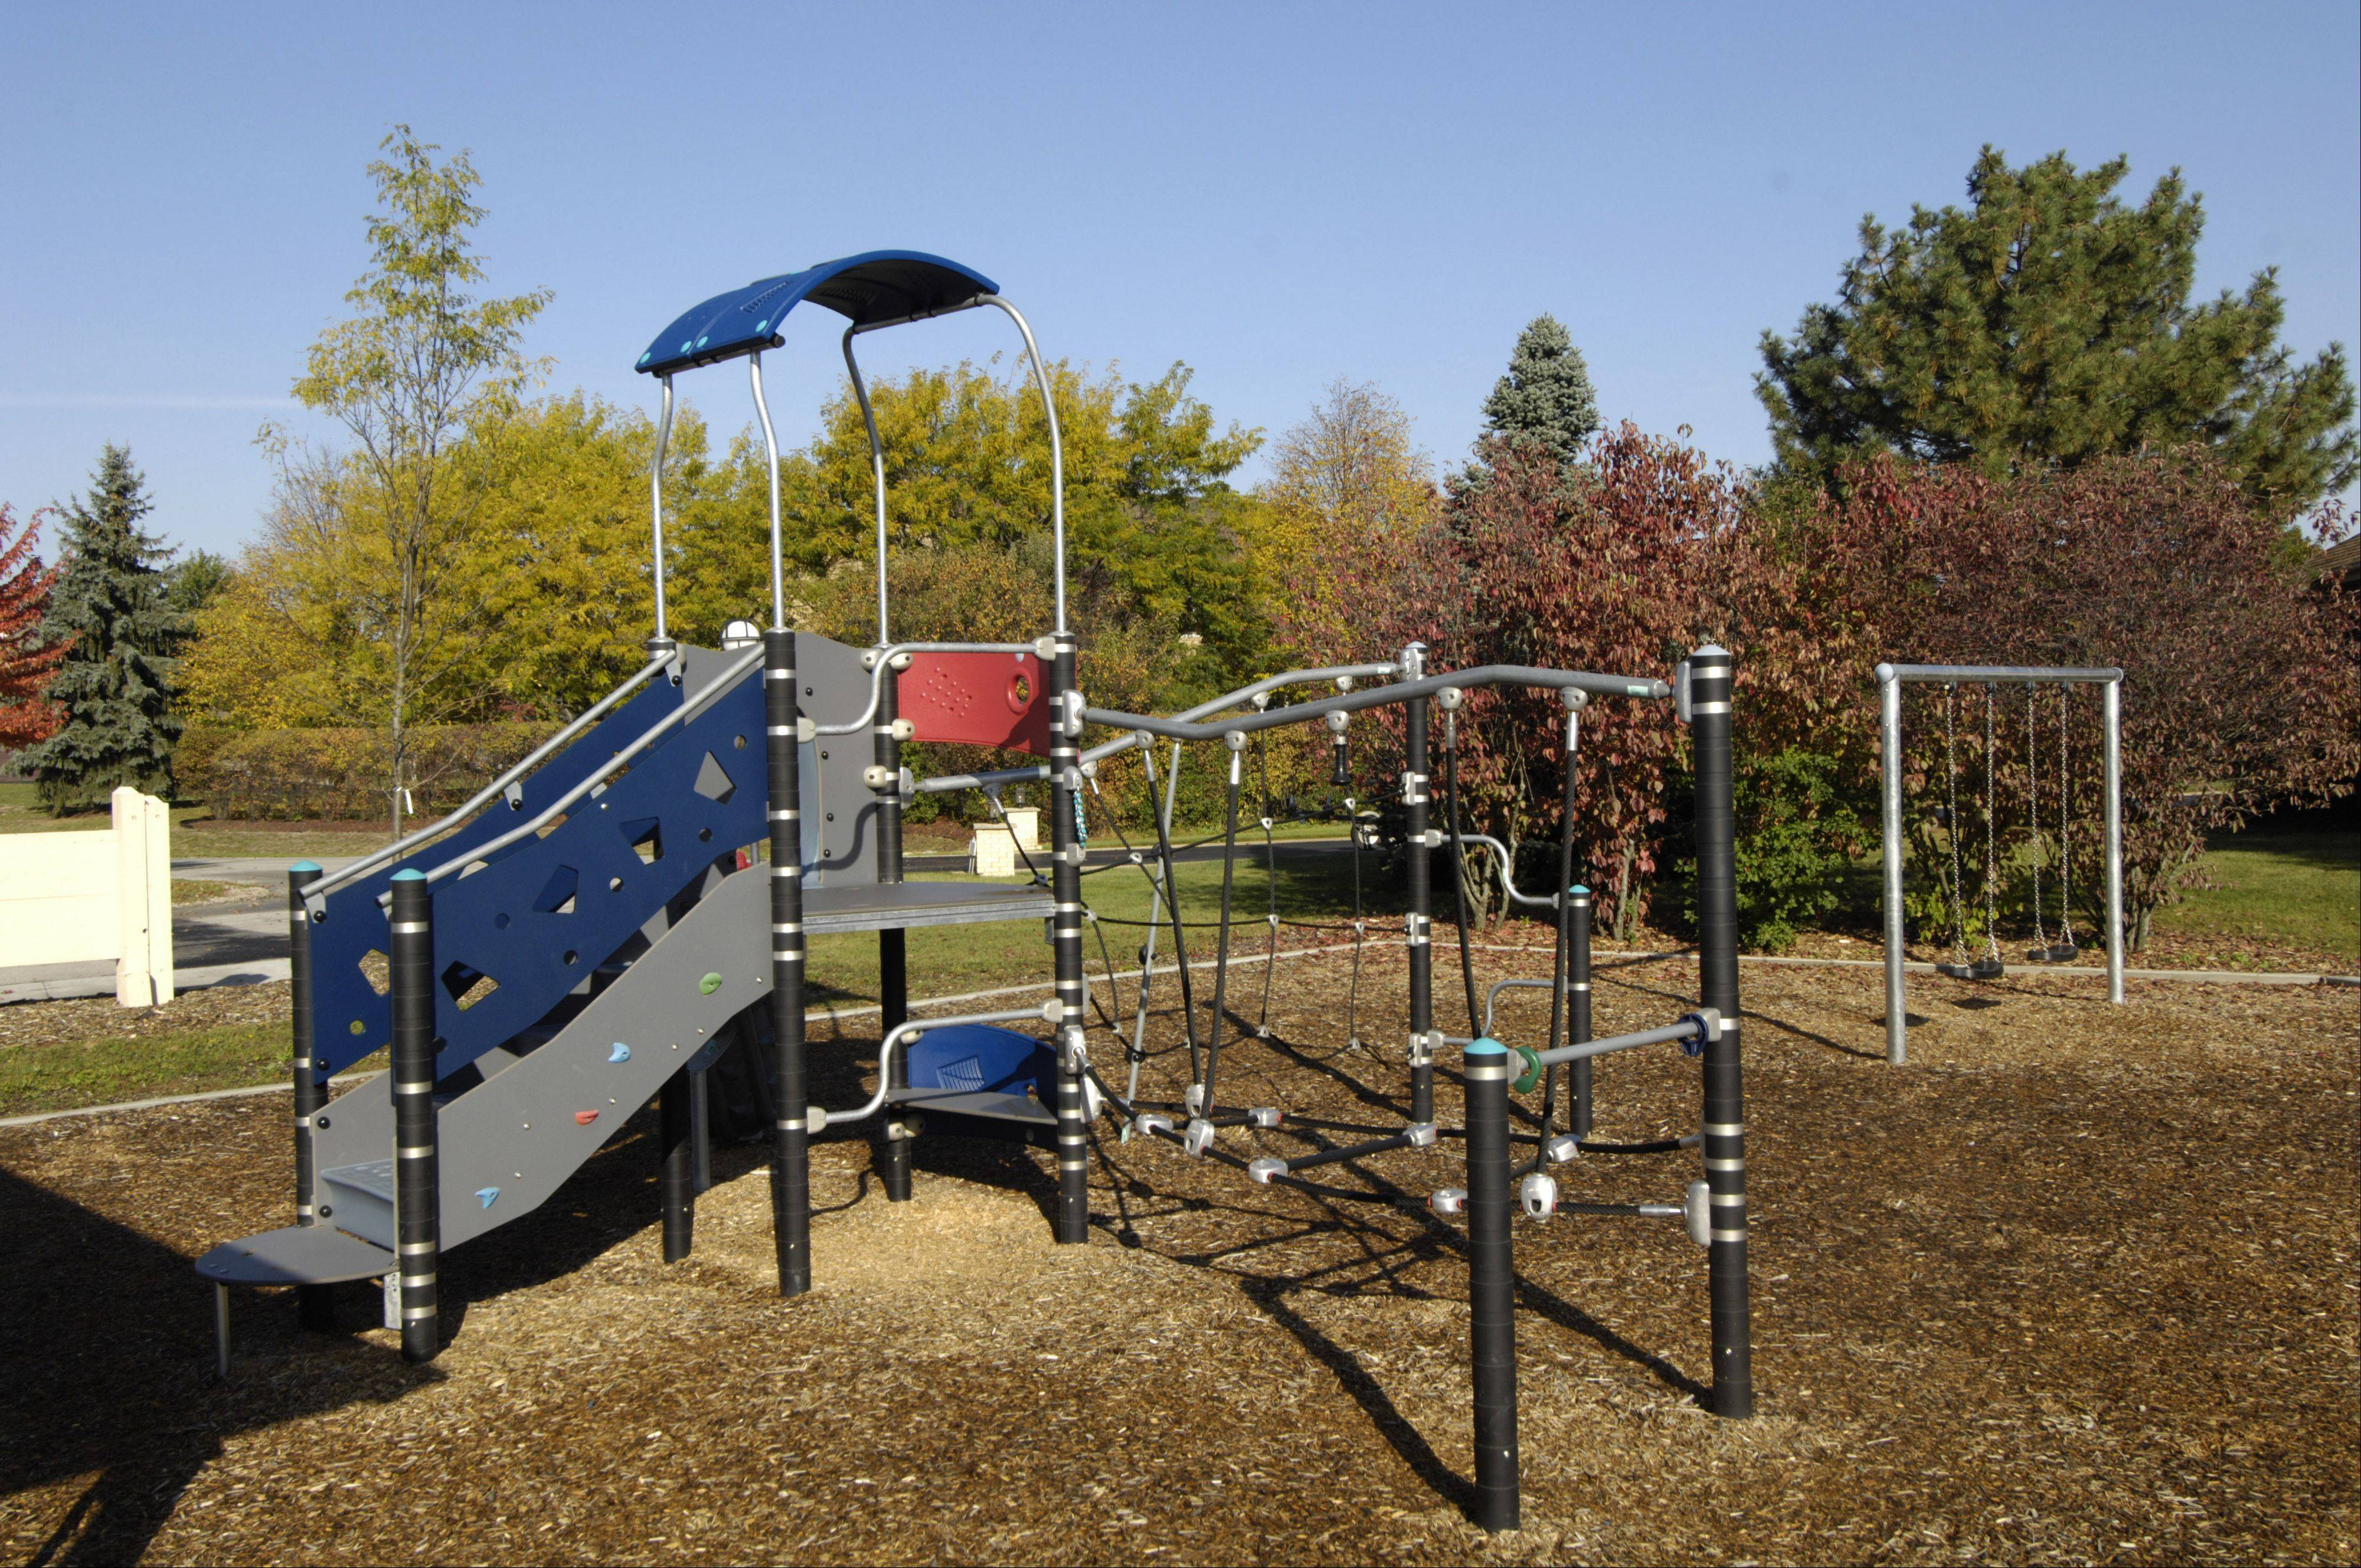 Claire Lane Park neighborhood in Prospect Heights includes a park district playground.